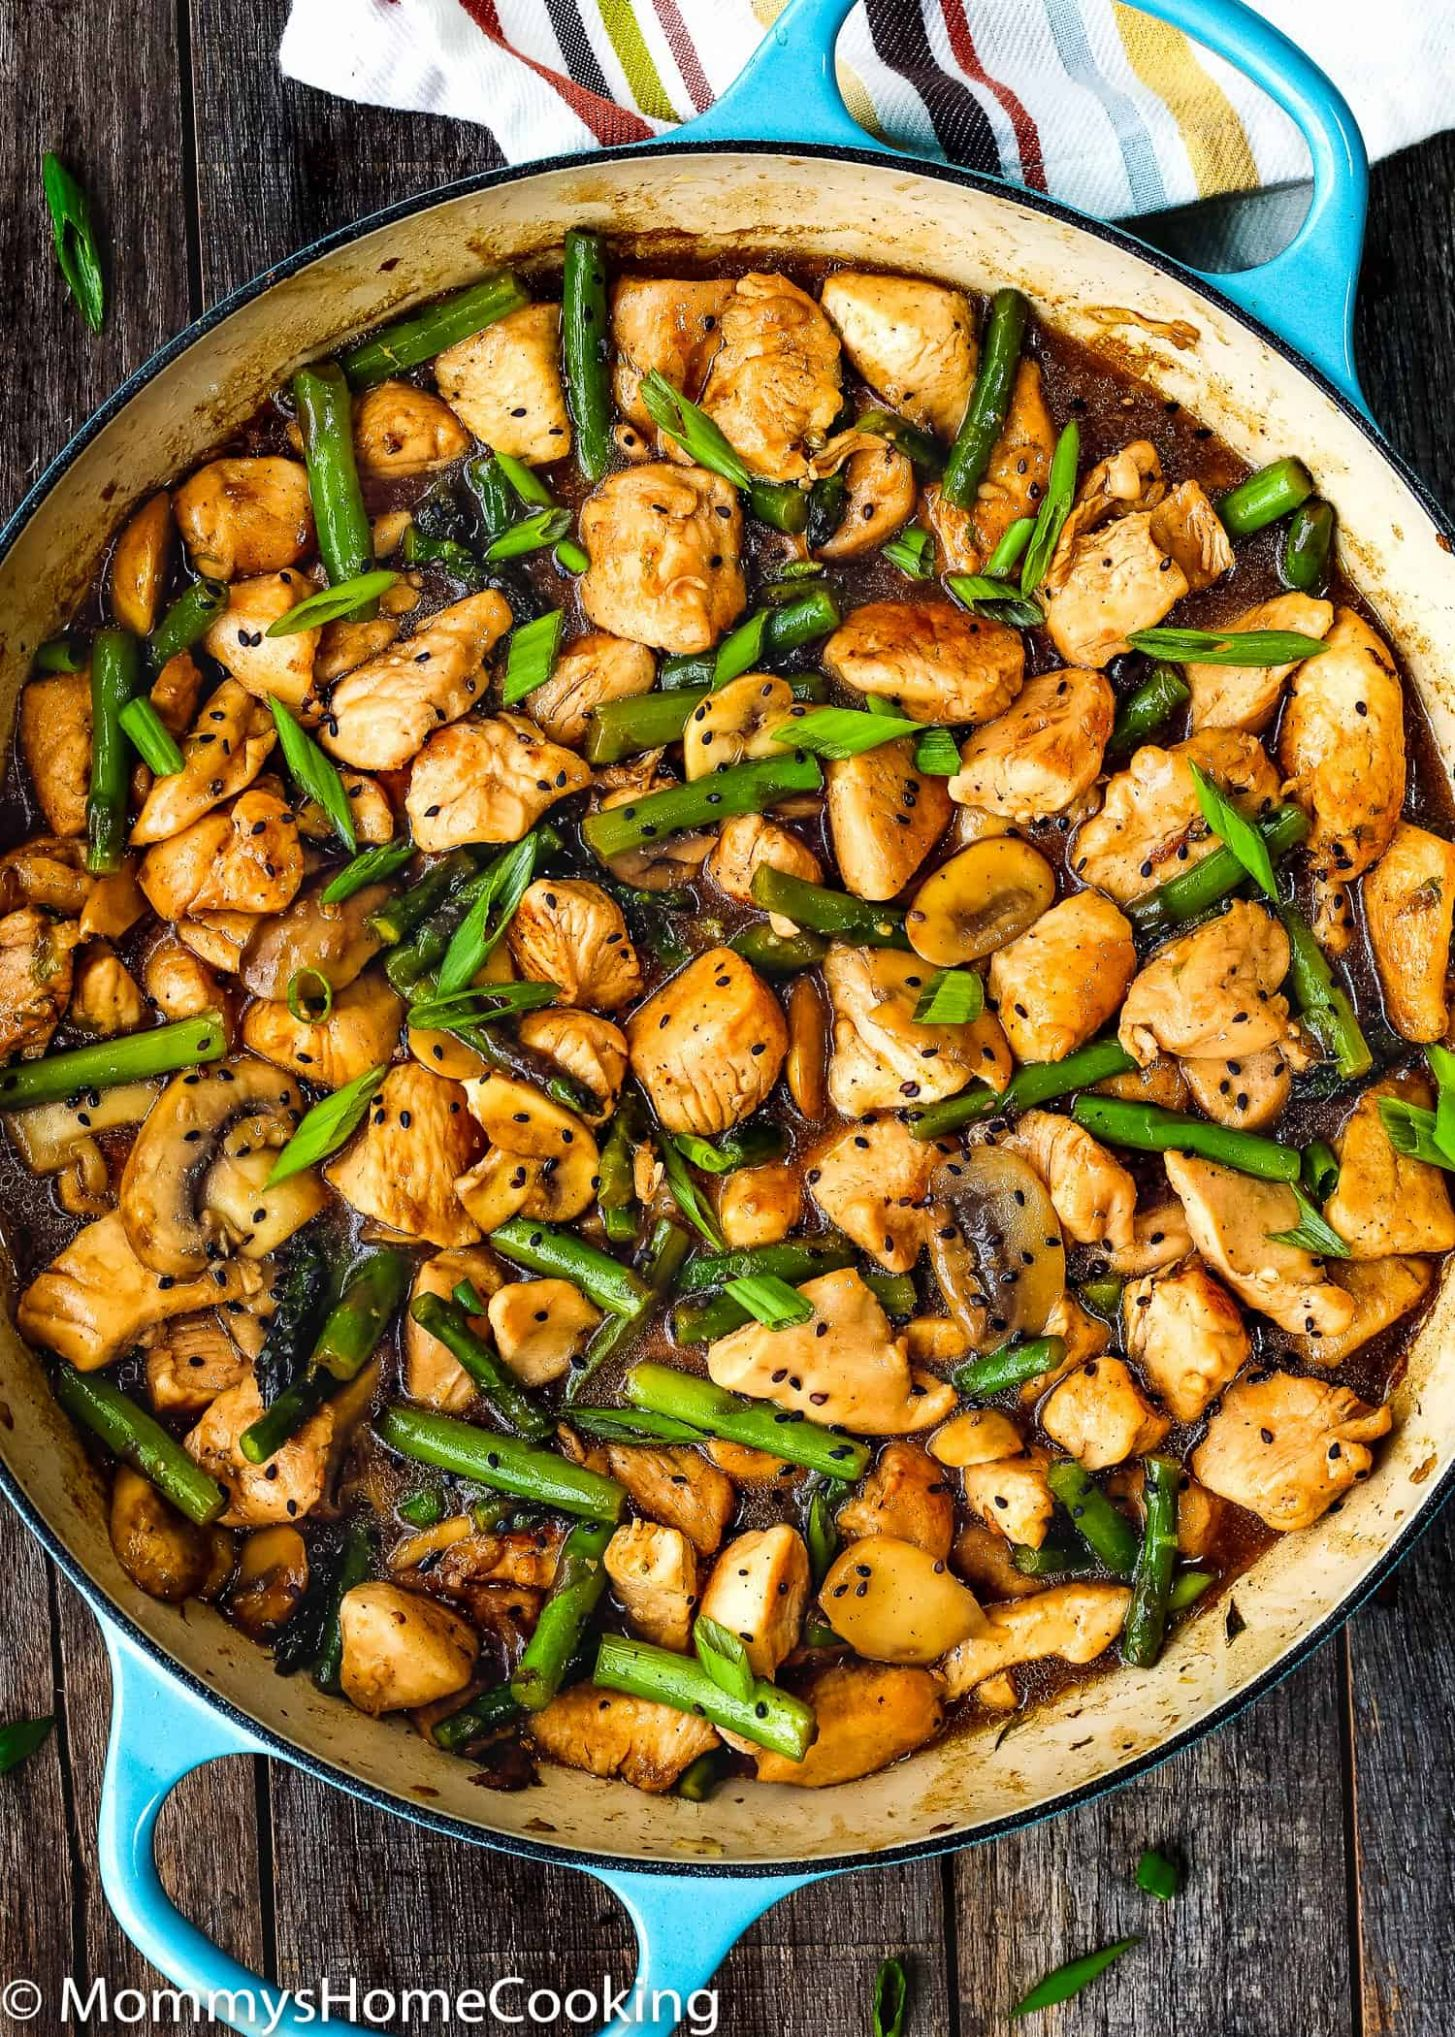 Easy Healthy Chicken and Asparagus Skillet - Recipes Chicken Healthy